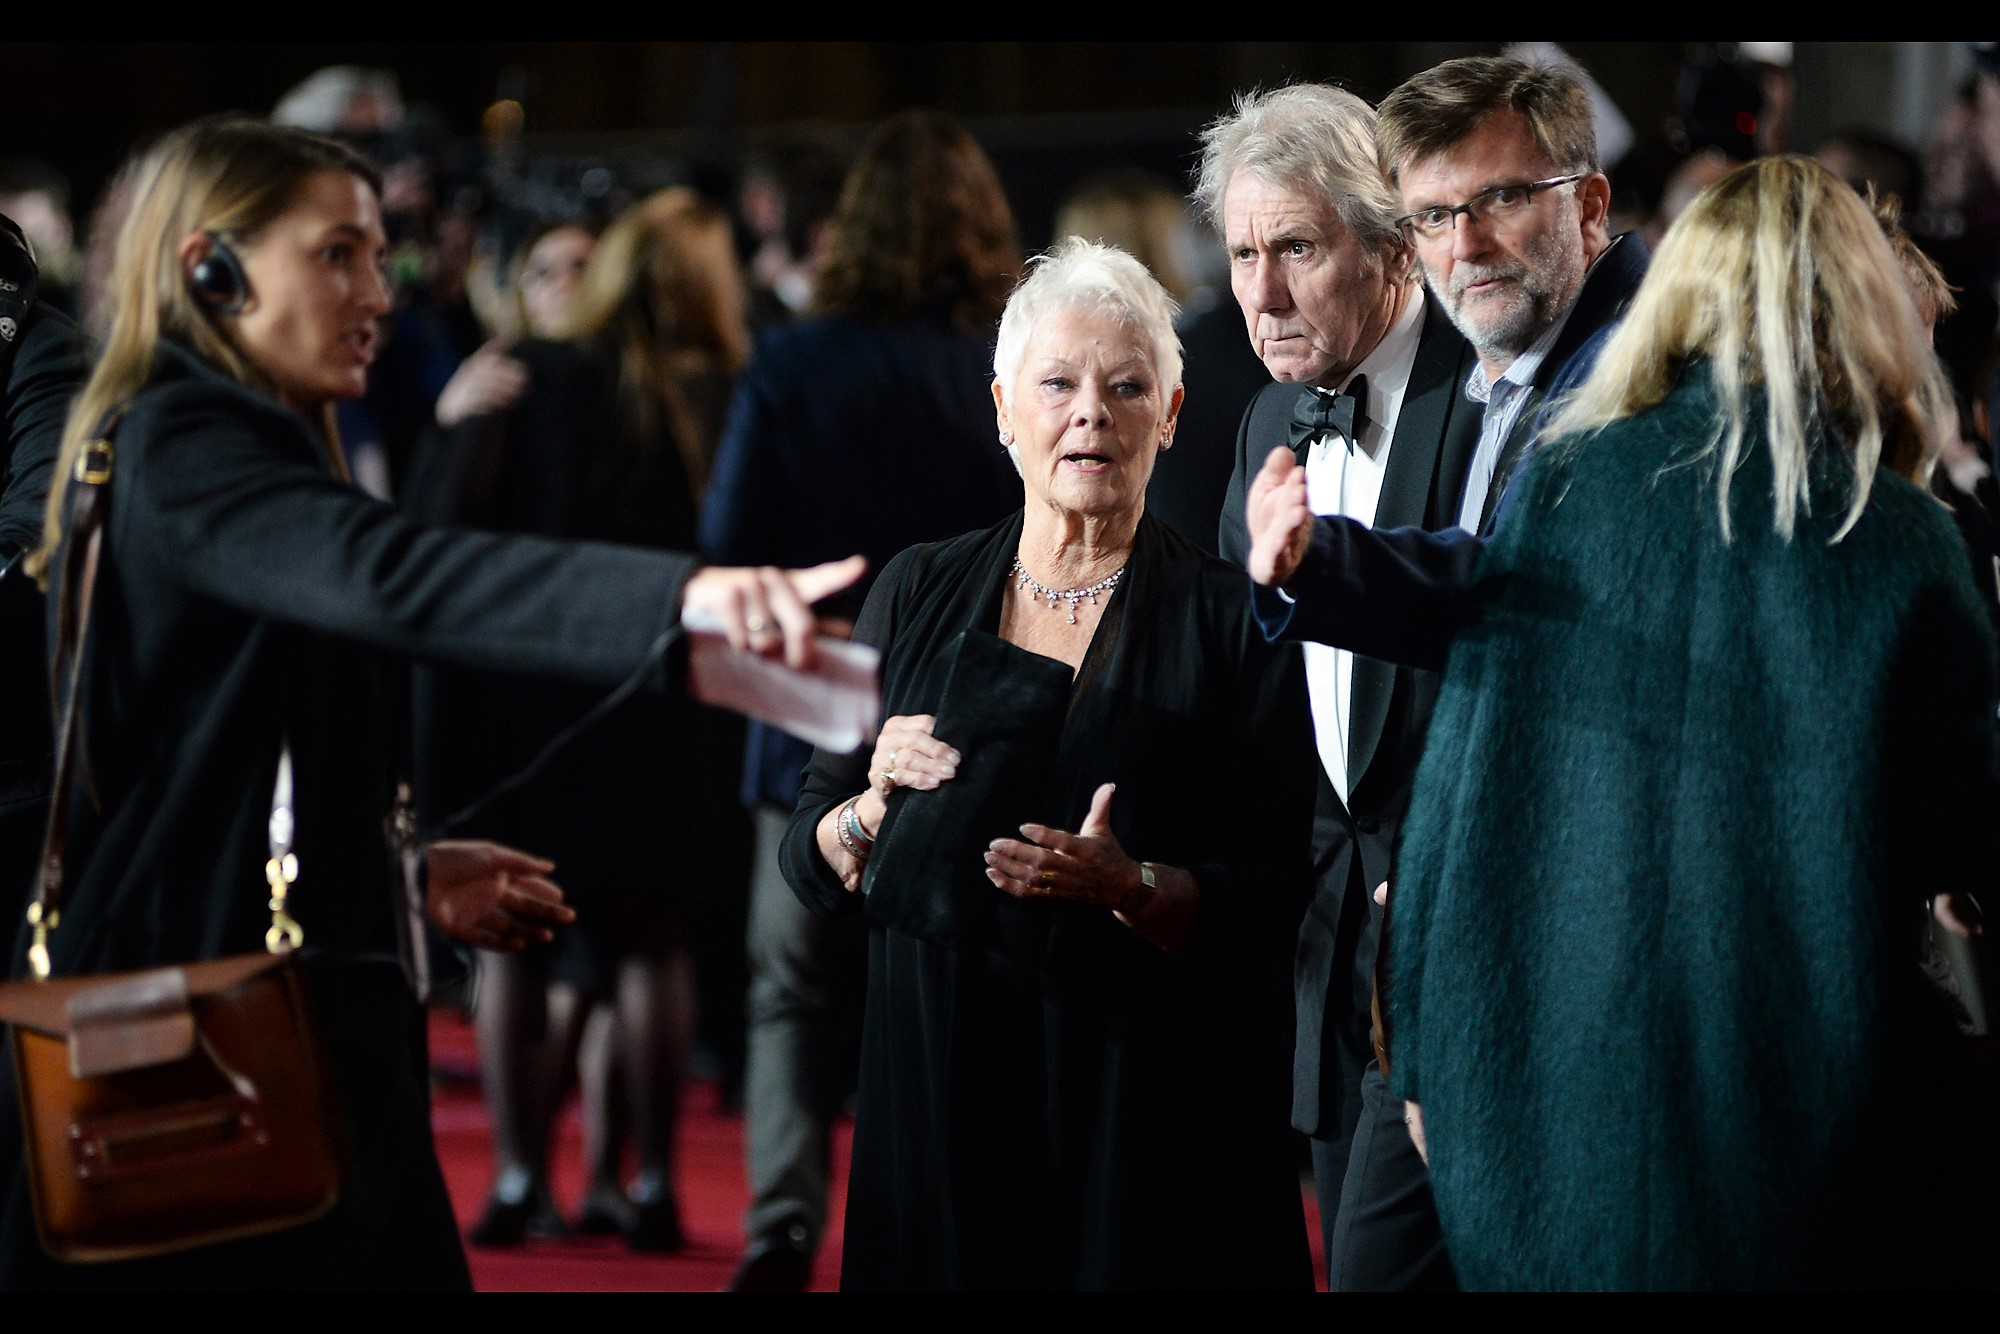 """They've all been told. You can punch any that disobey. Or ask security to punch them for you""  - Dame Judi Dench suffers from an eye ailment and all the Paparazzi were instructed to turn OFF their flashes when photographing her."